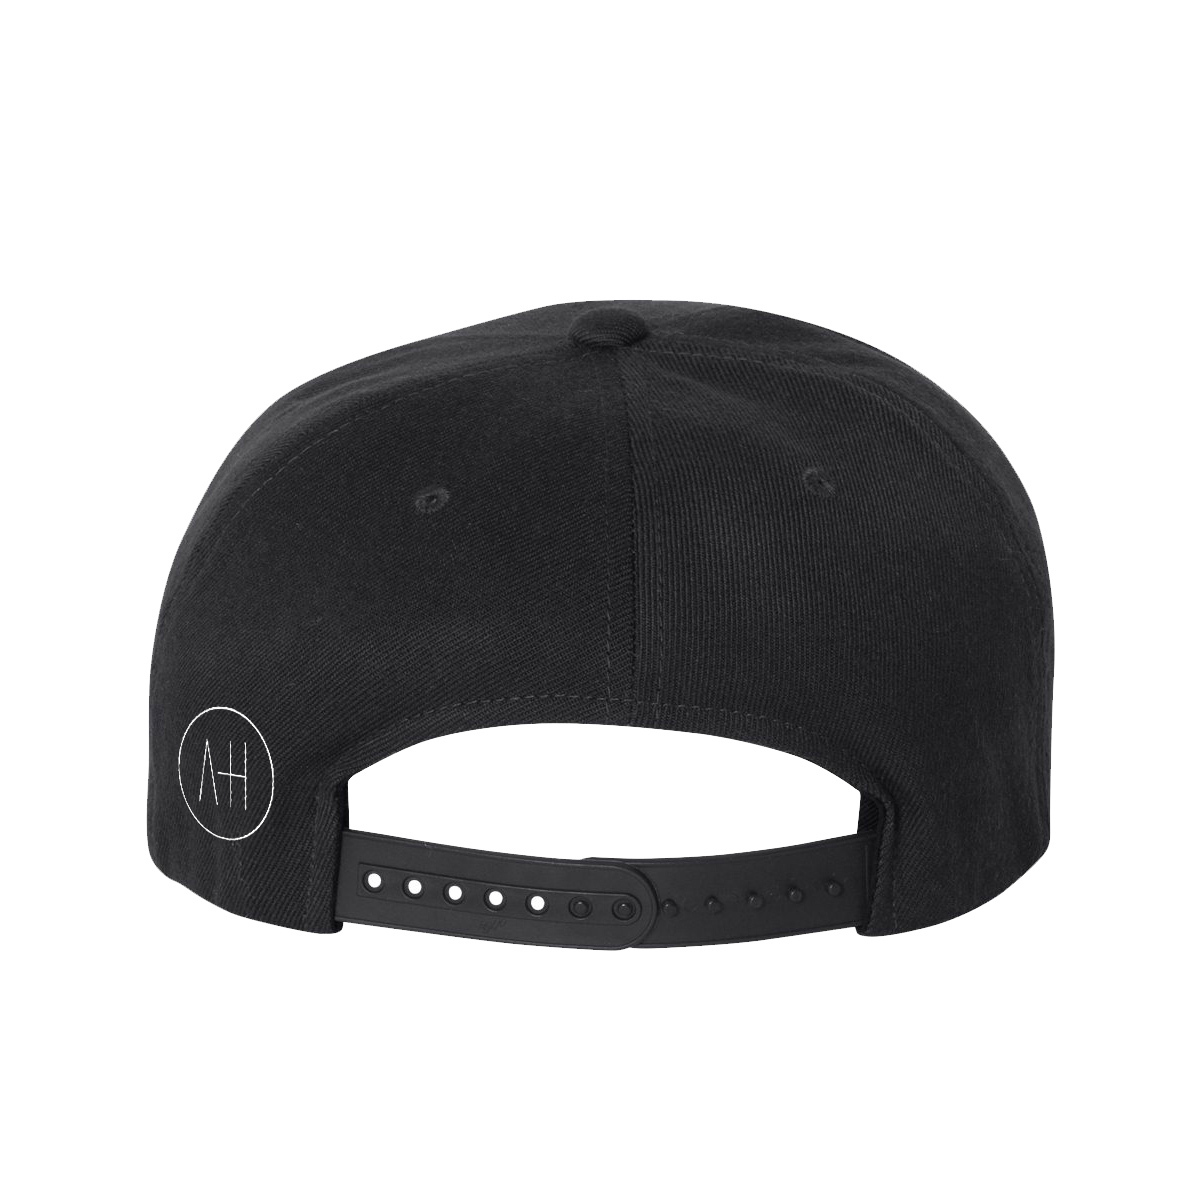 It Doesn't Have To Be This Way Snapback Hat